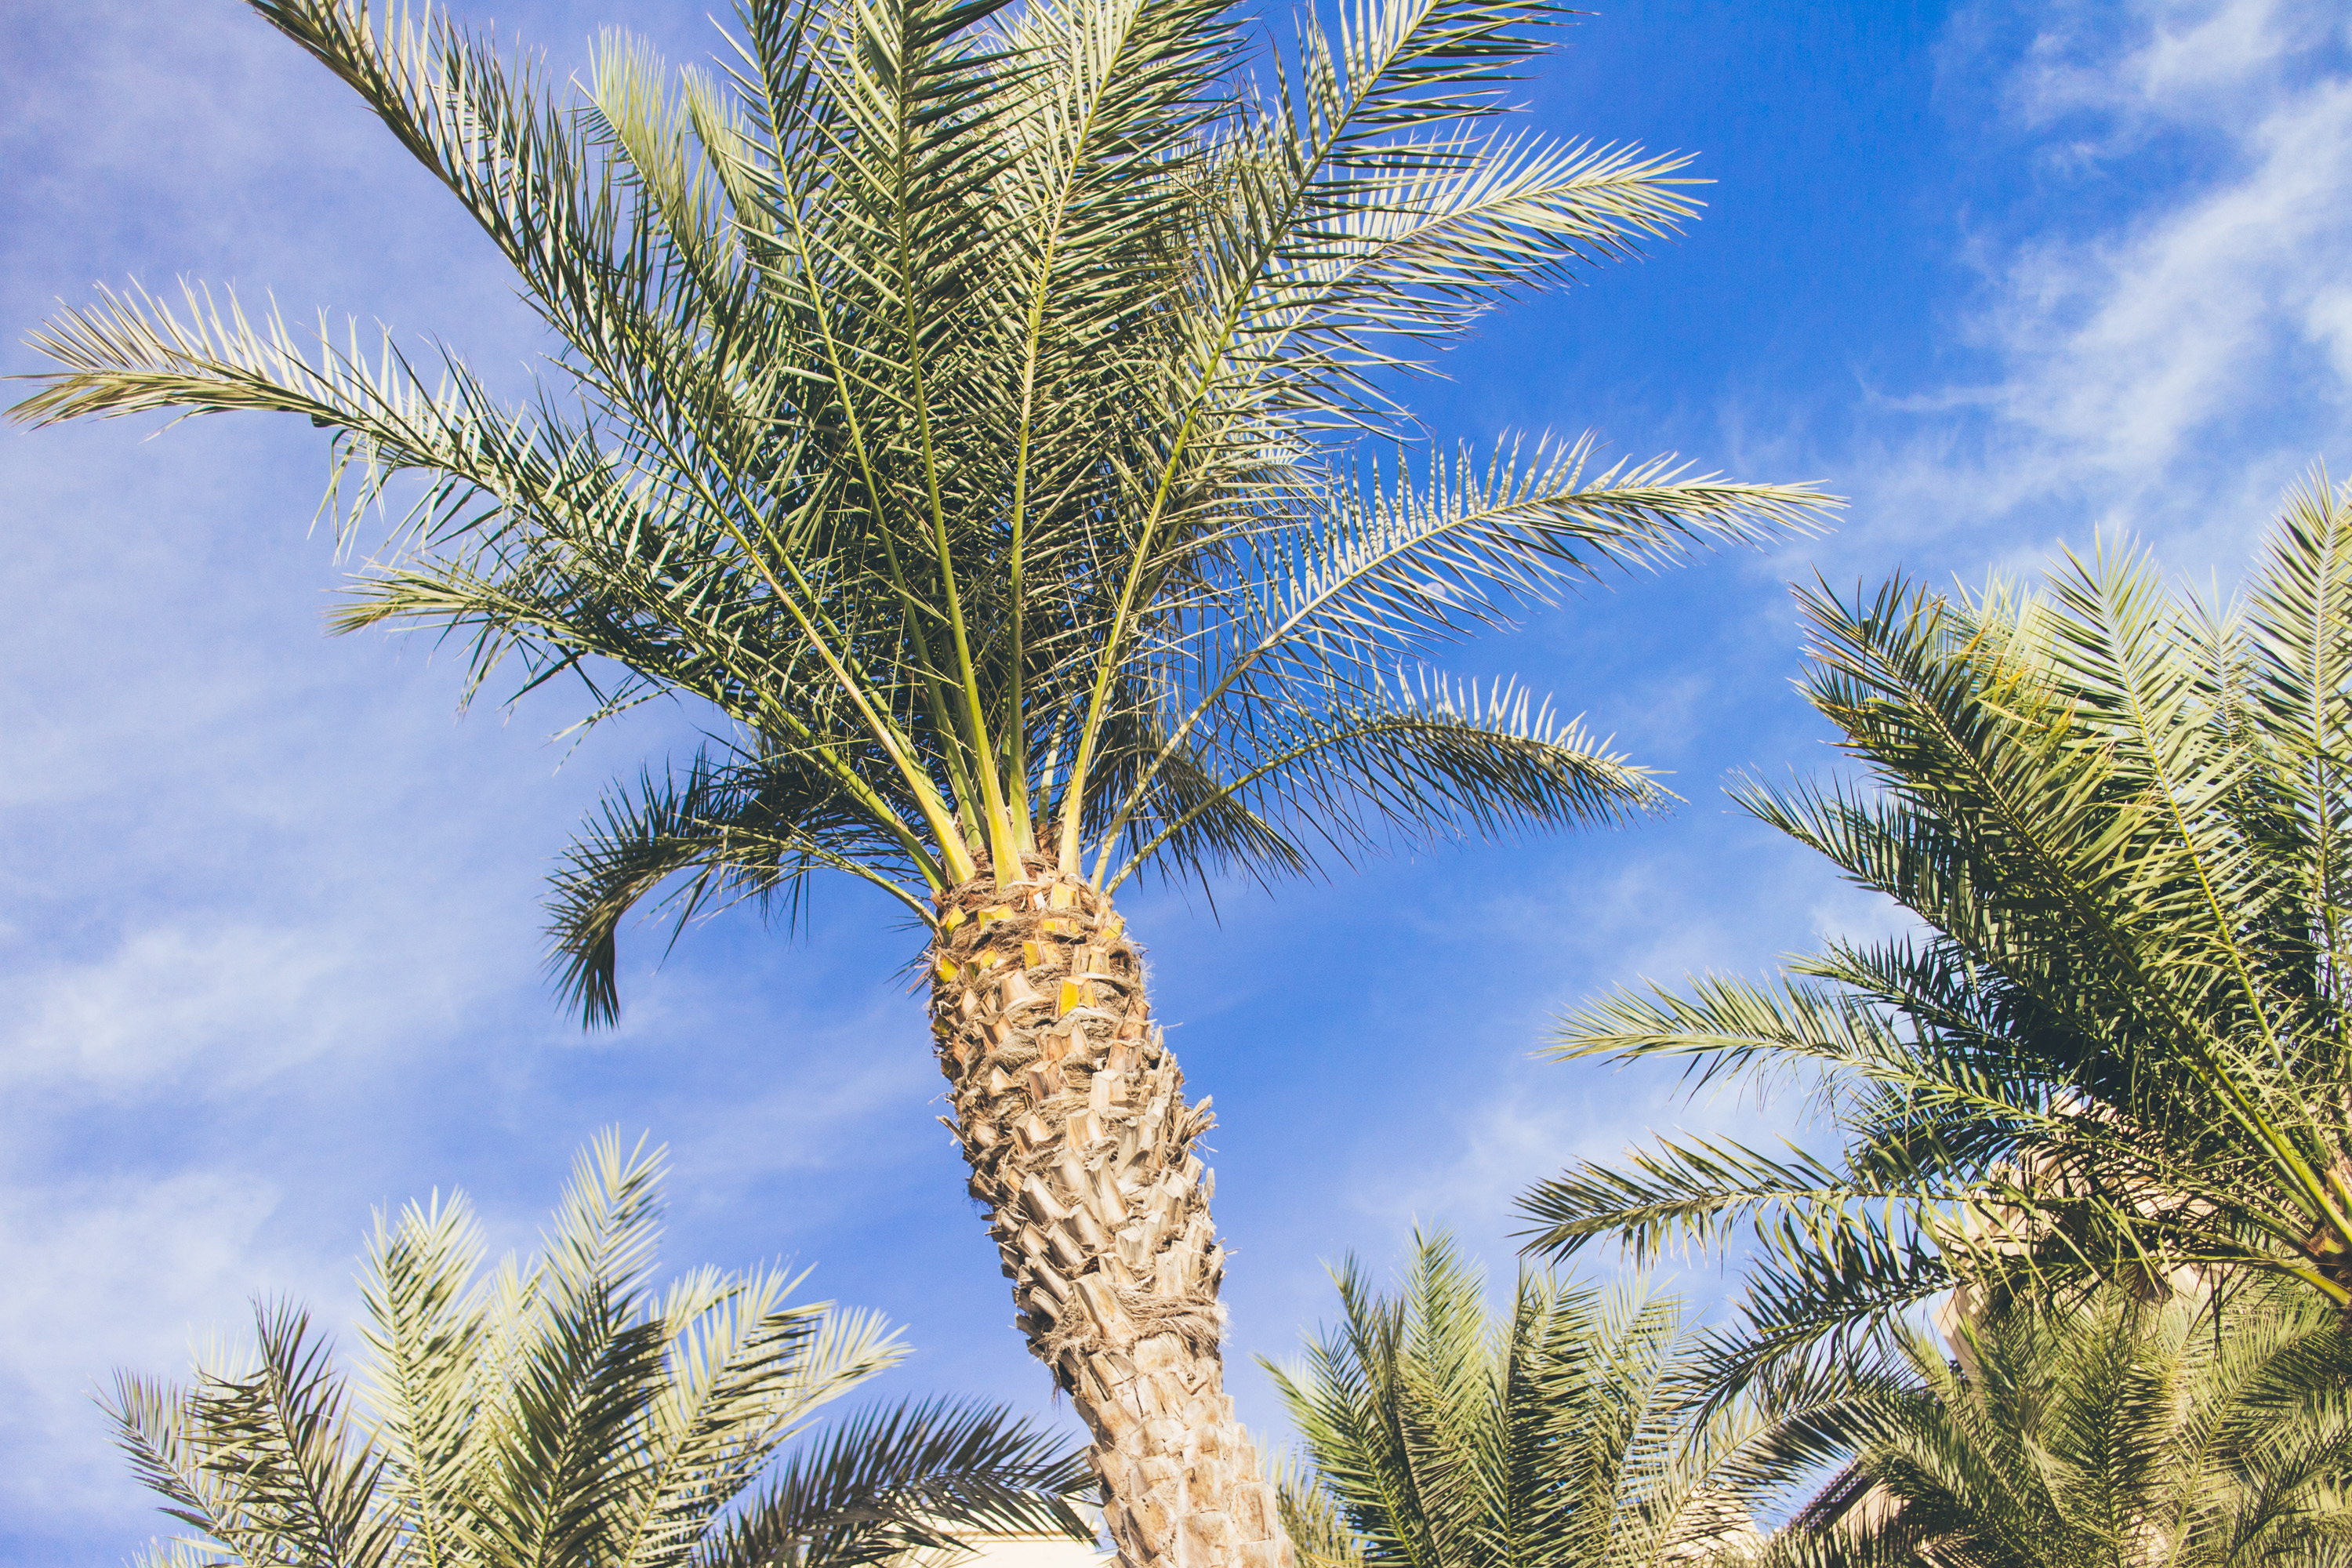 Andrea_Berlin_Fairmont_the_palm_Dubai-2177